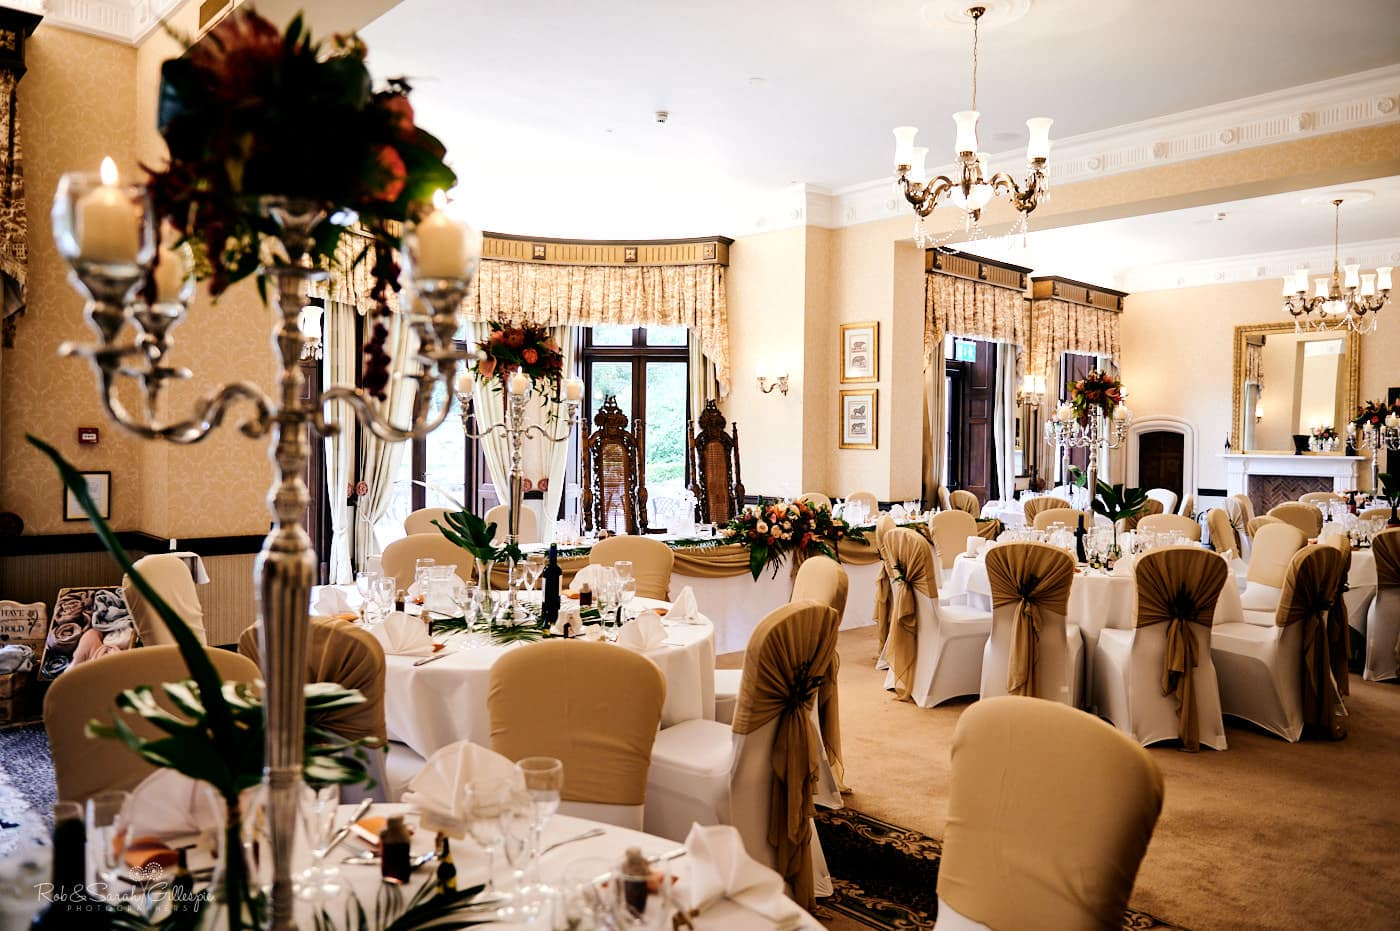 Spring Grove House set up ready for wedding breakfast with round tables and decoration